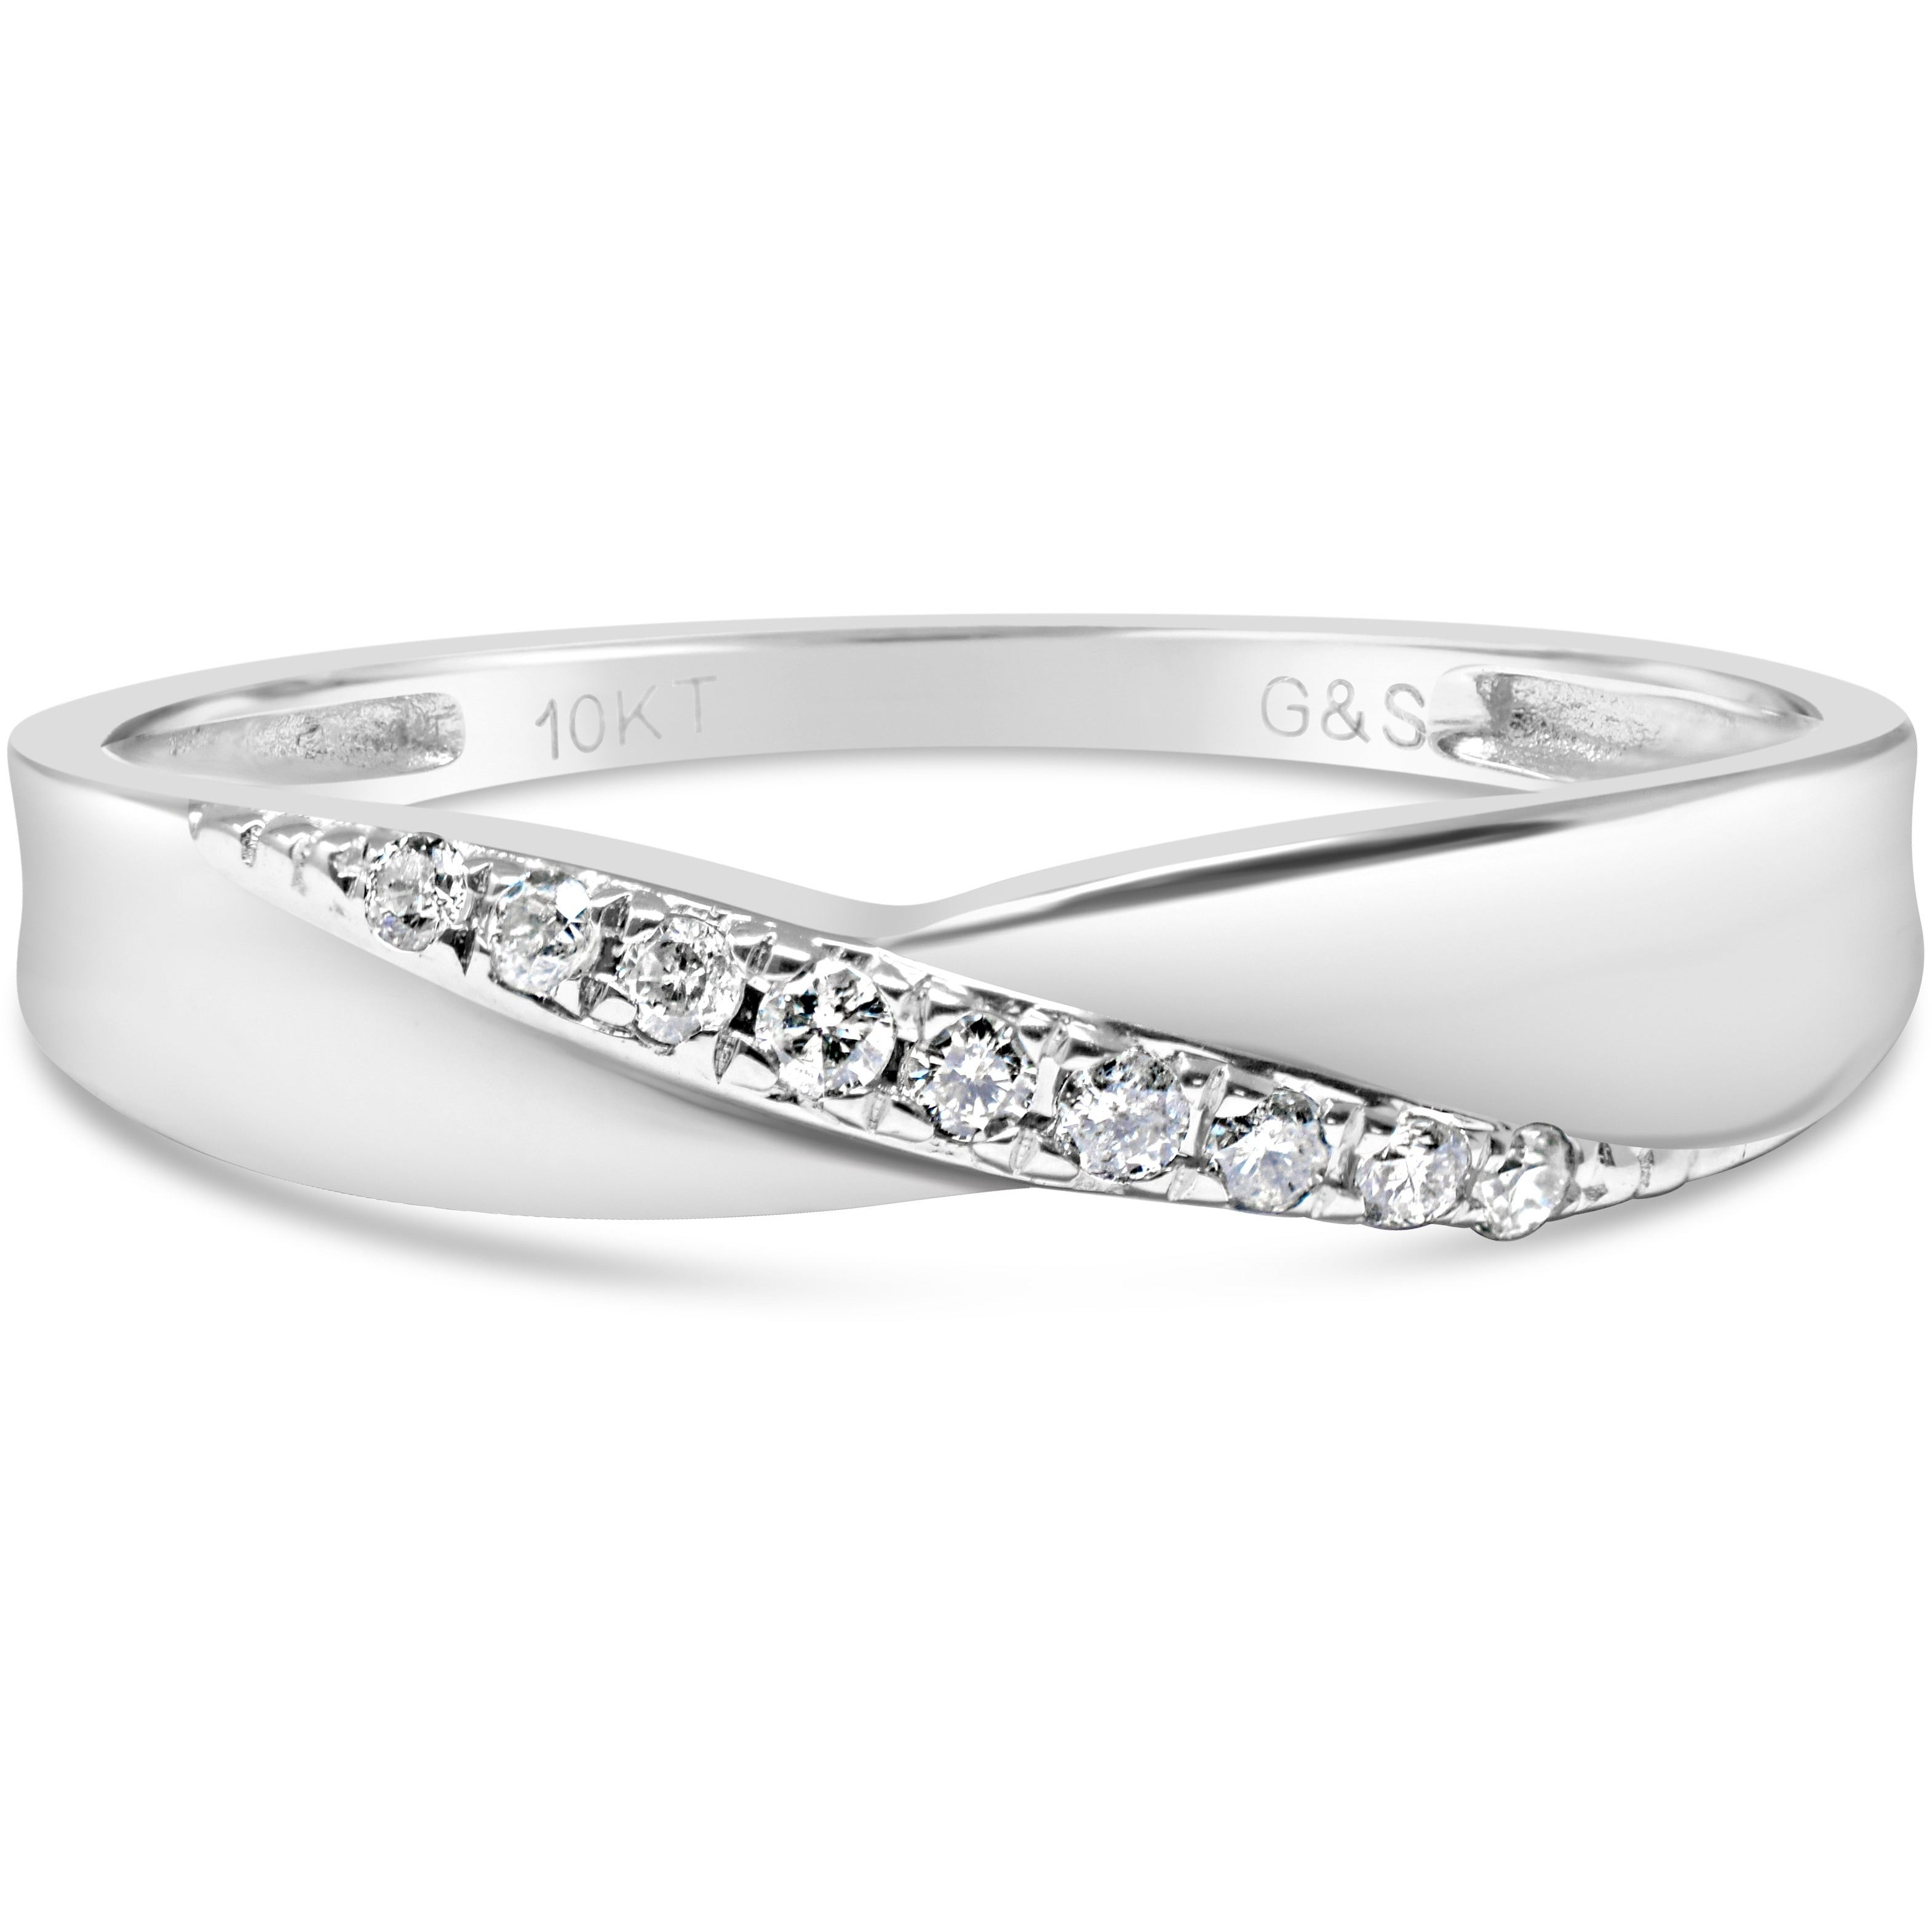 White gold diamond band - eternity wedding band that also enhances solitaire rings - G&S Diamonds